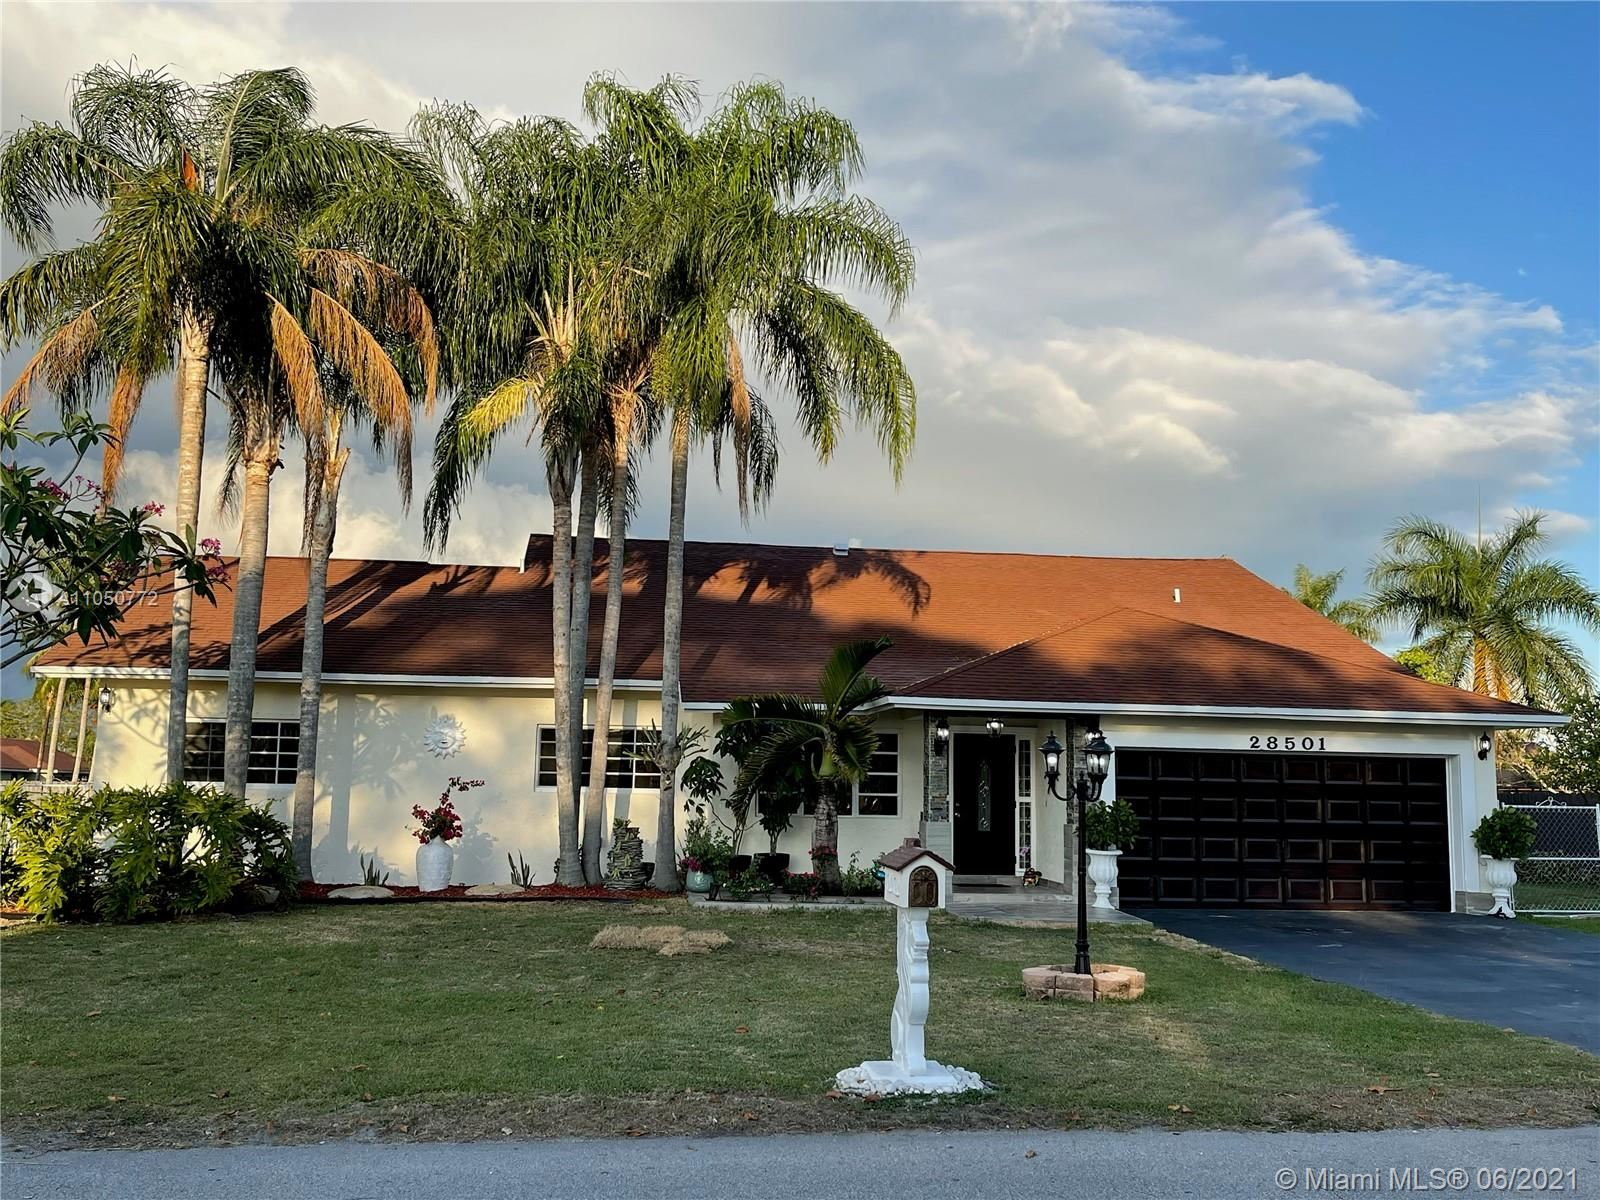 28501 SW 164th Ave, Homestead, FL 33033 - #: A11050772